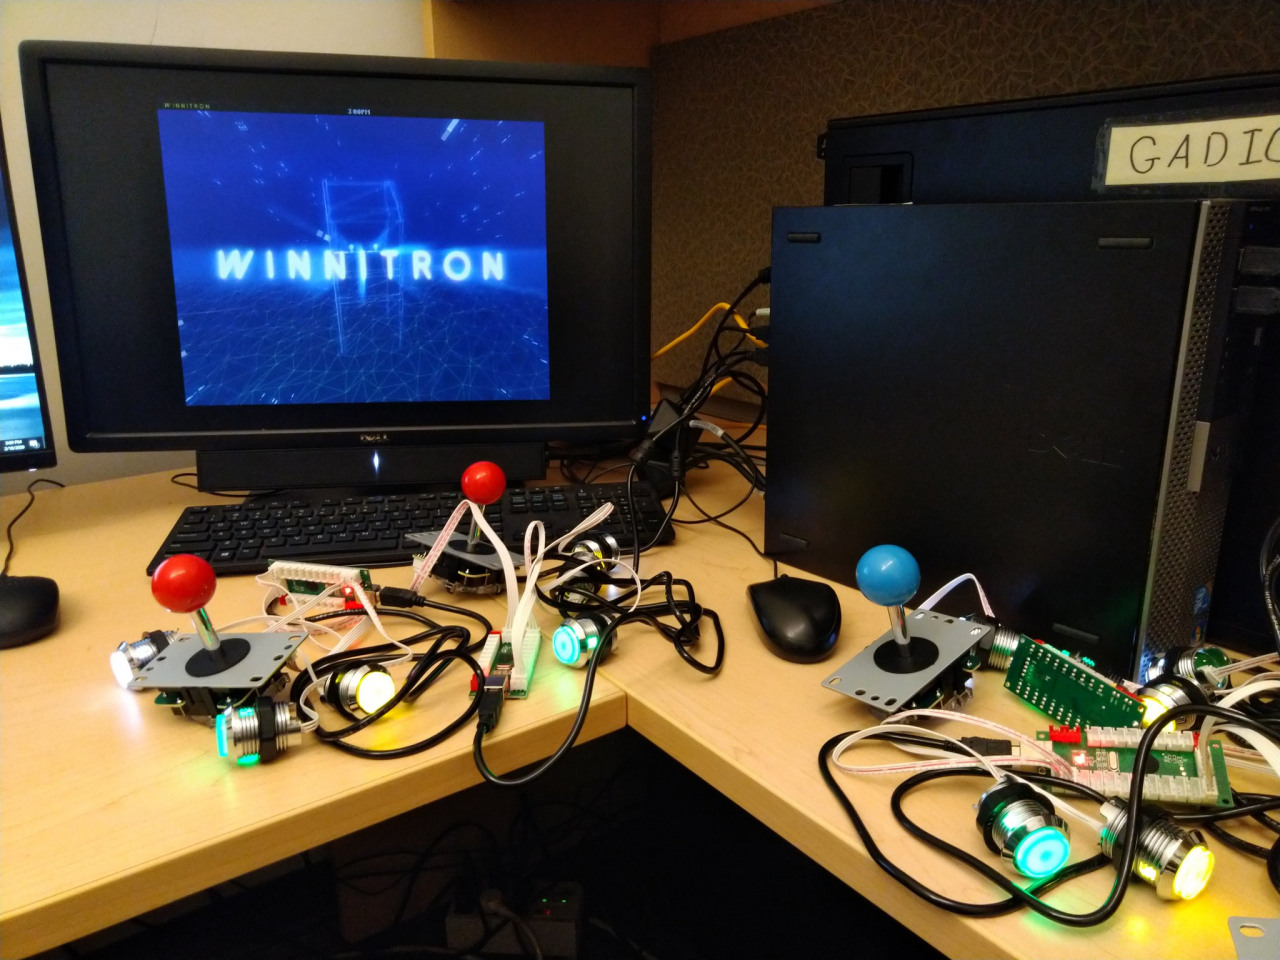 GMU Game Winnitron (Patriotron)